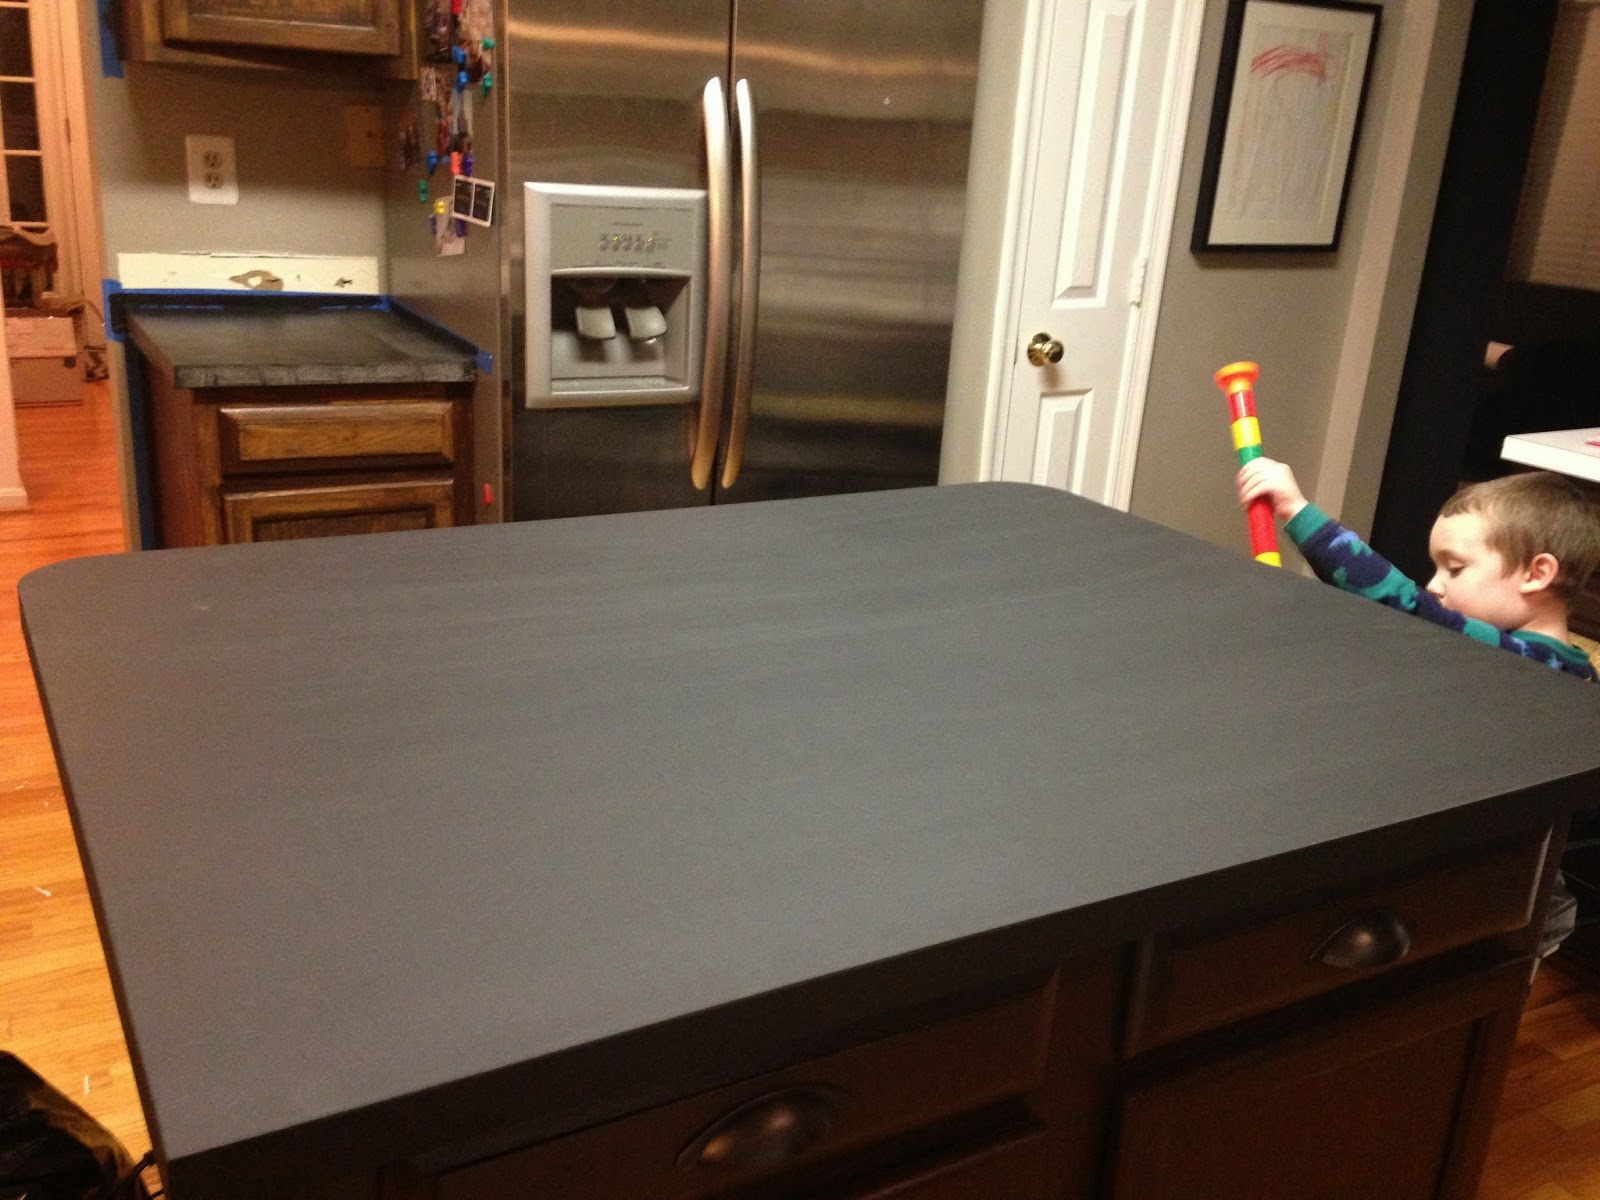 Countertop Chalkboard Paint : ... just have the countertops around the perimeter to do and then seal